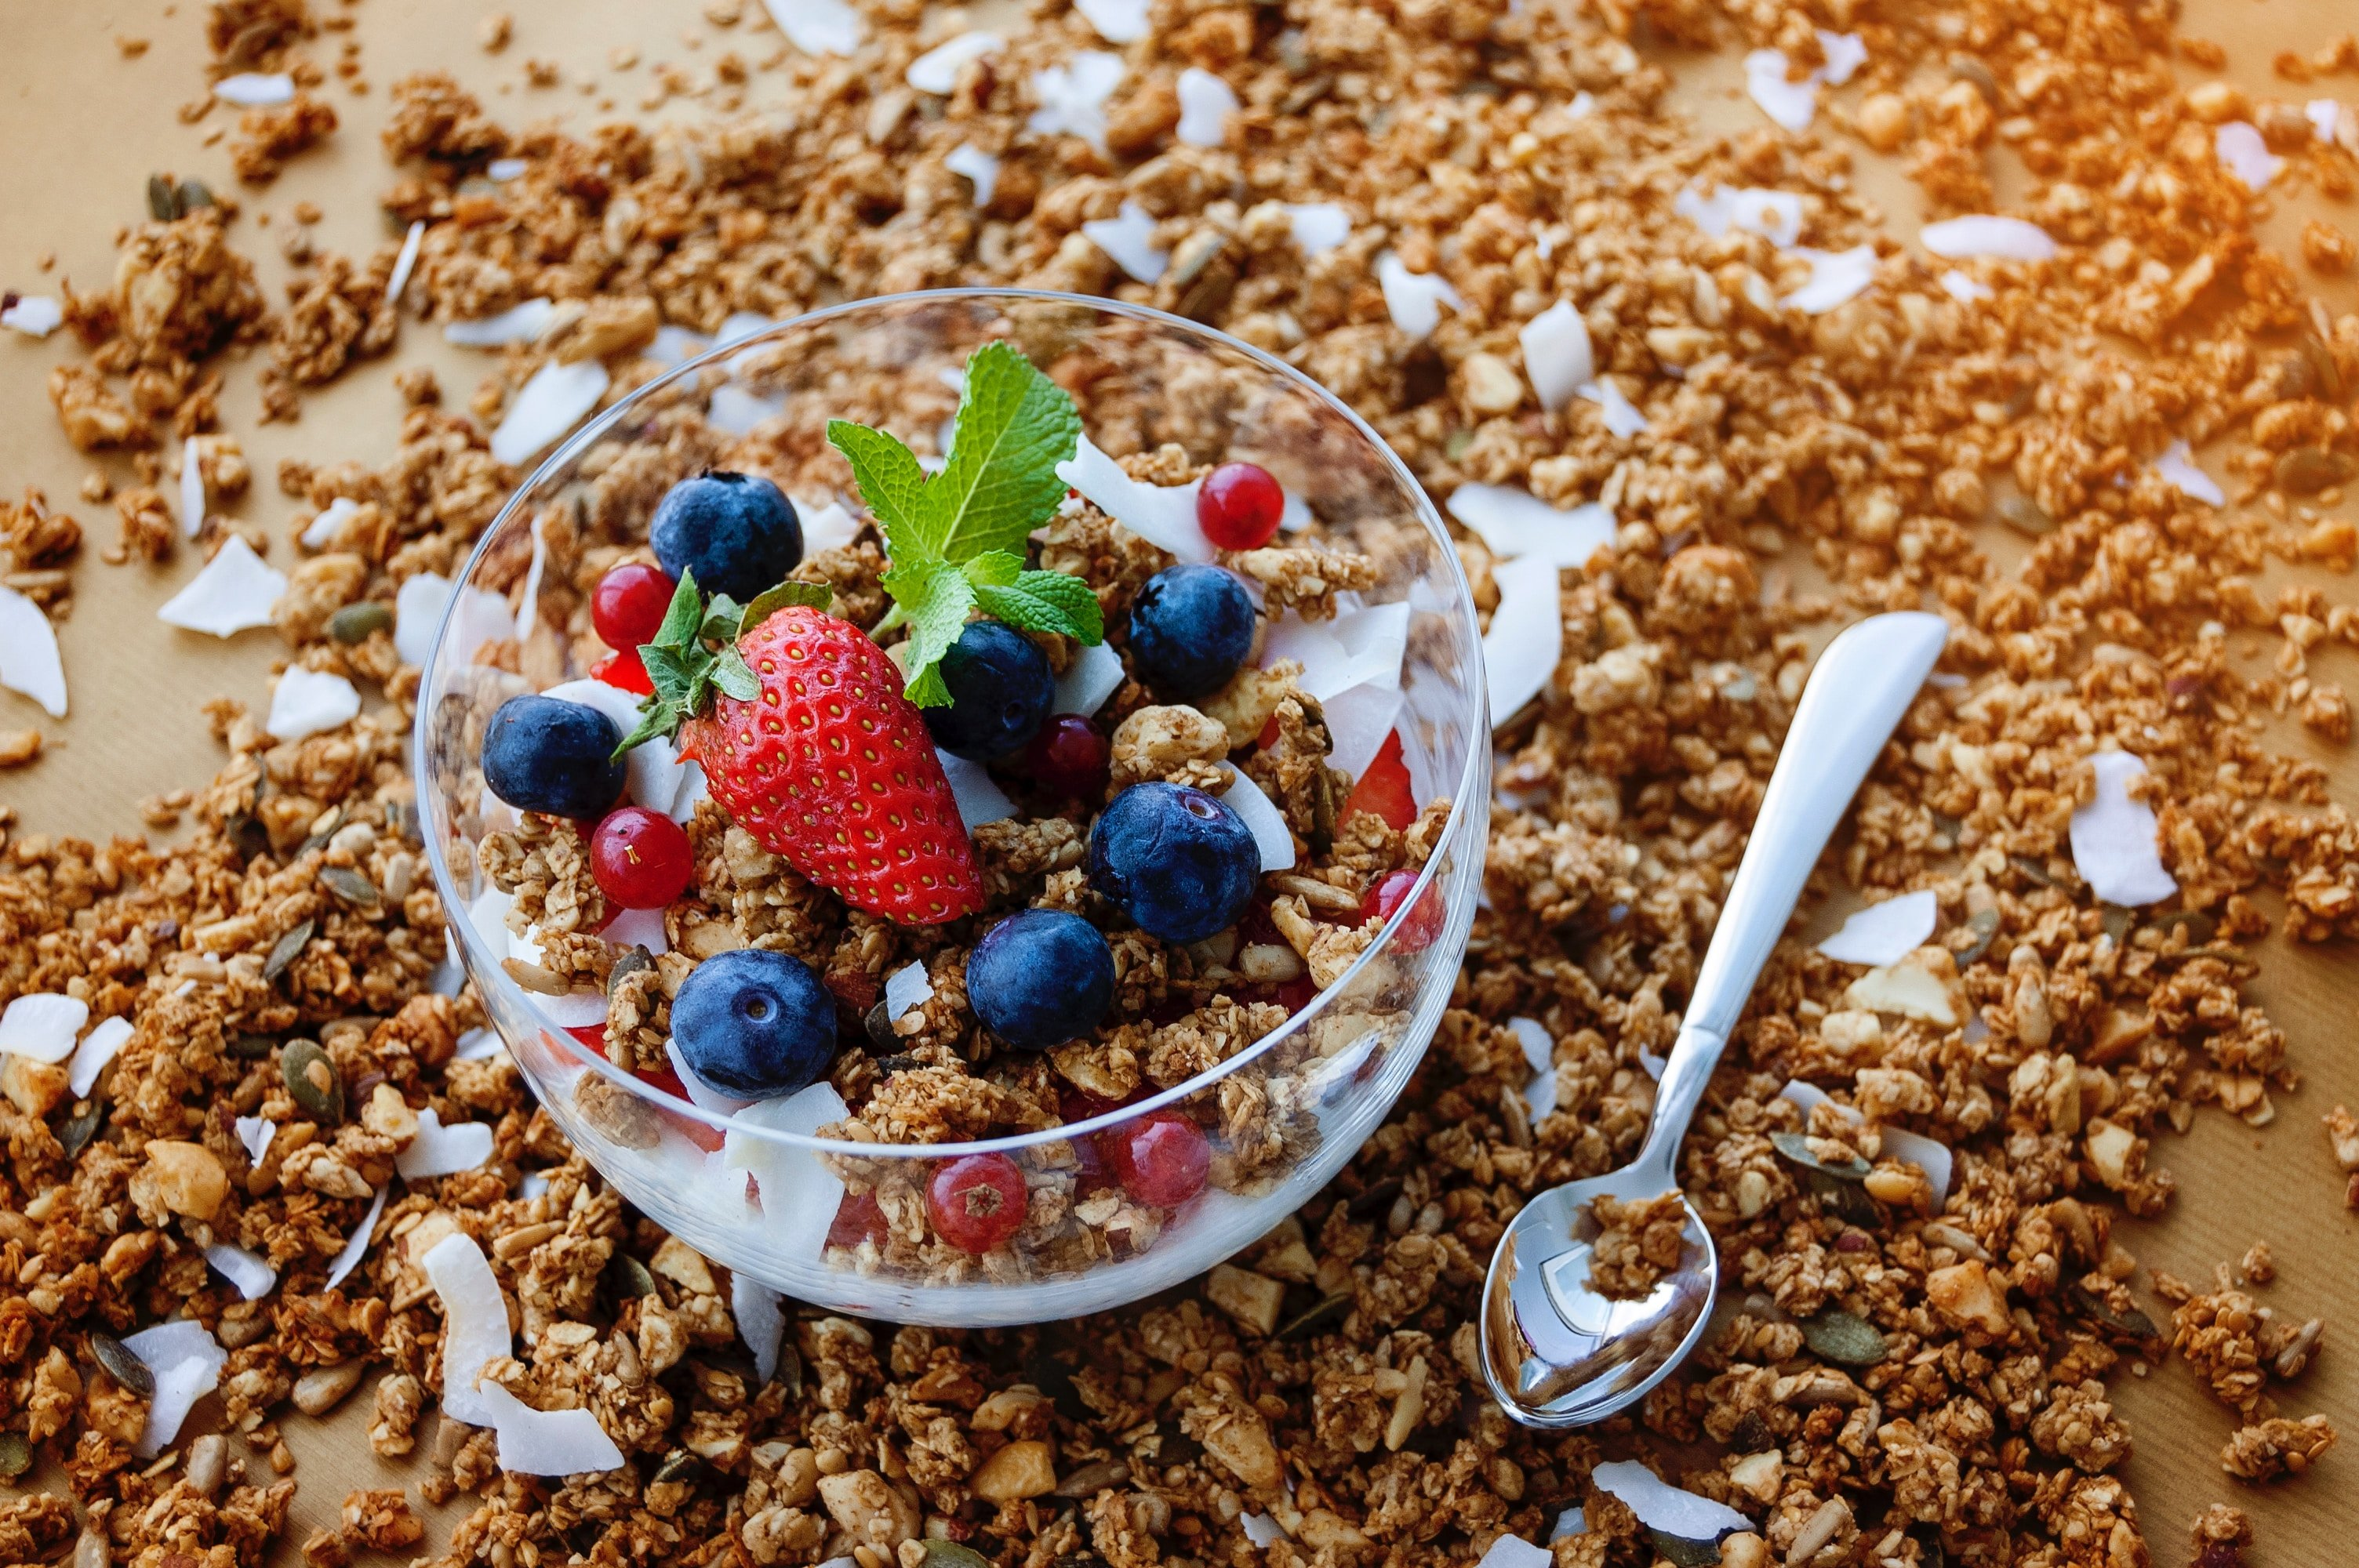 Cherry Granola Bowl